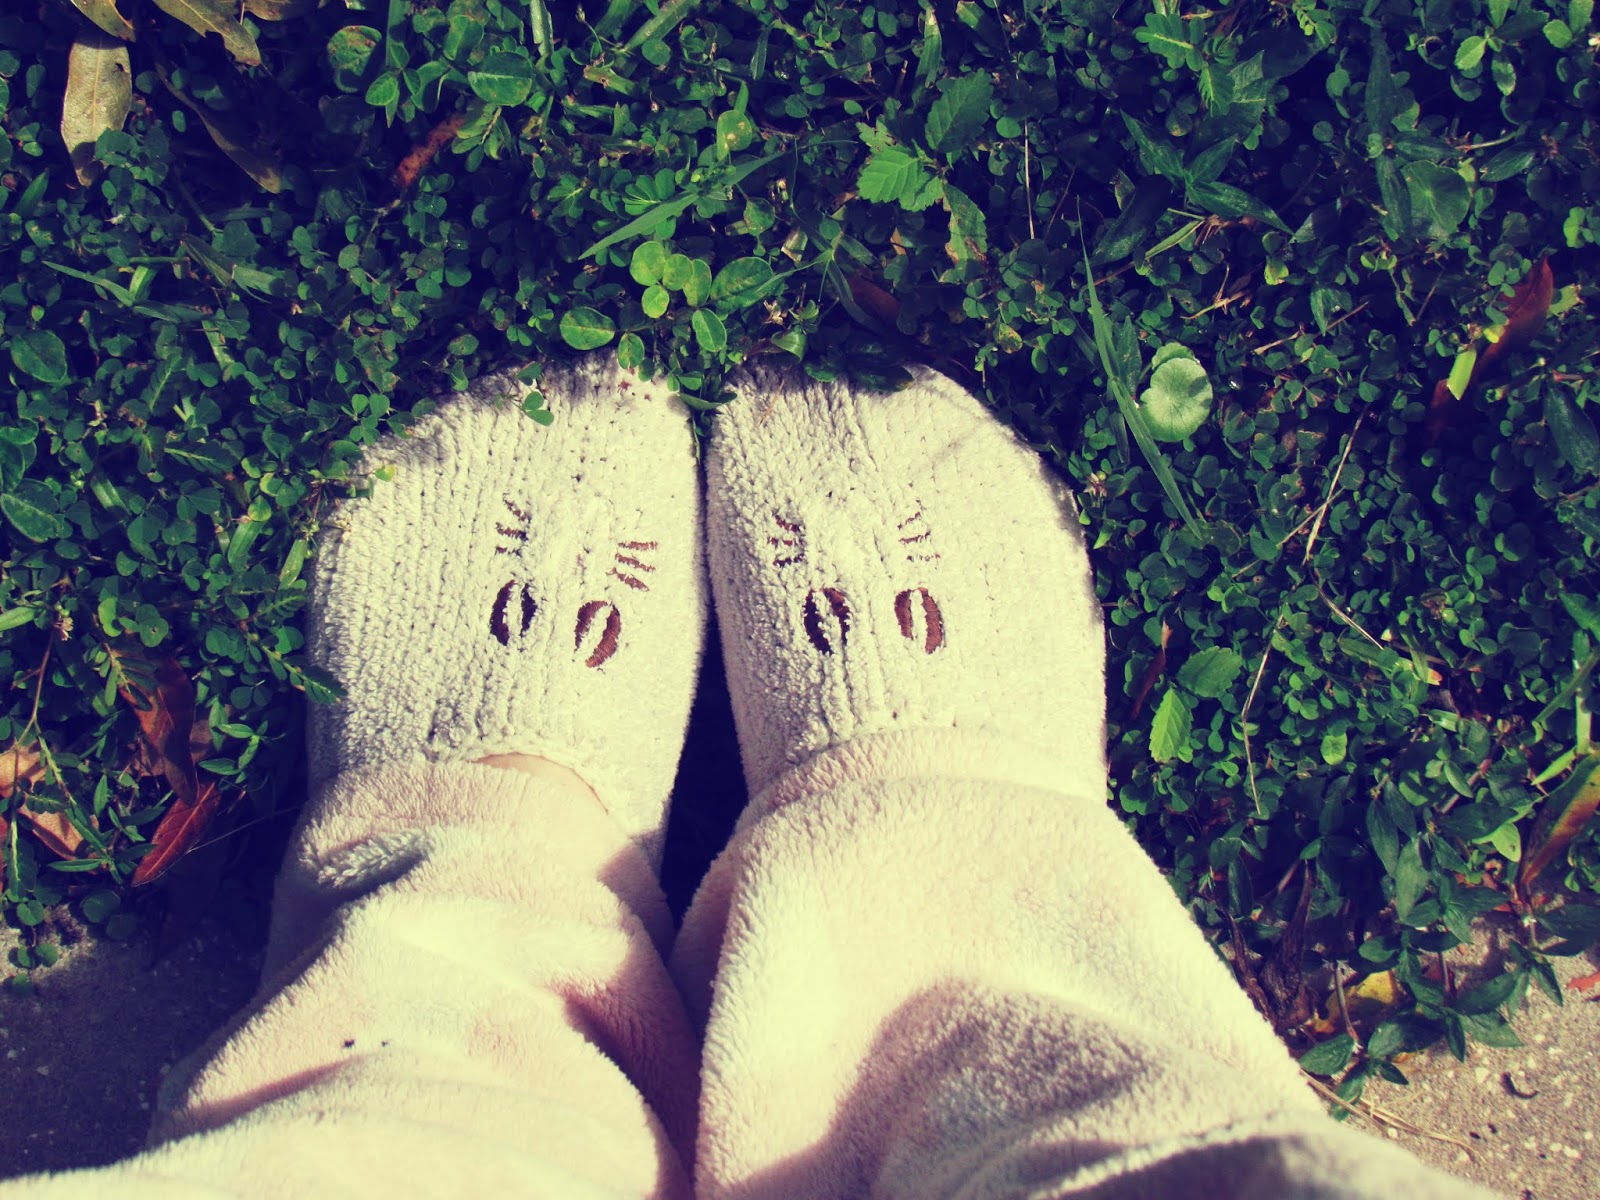 A woman wearing white bunny slippers on green grass in Florida during the winter season and winter holidays